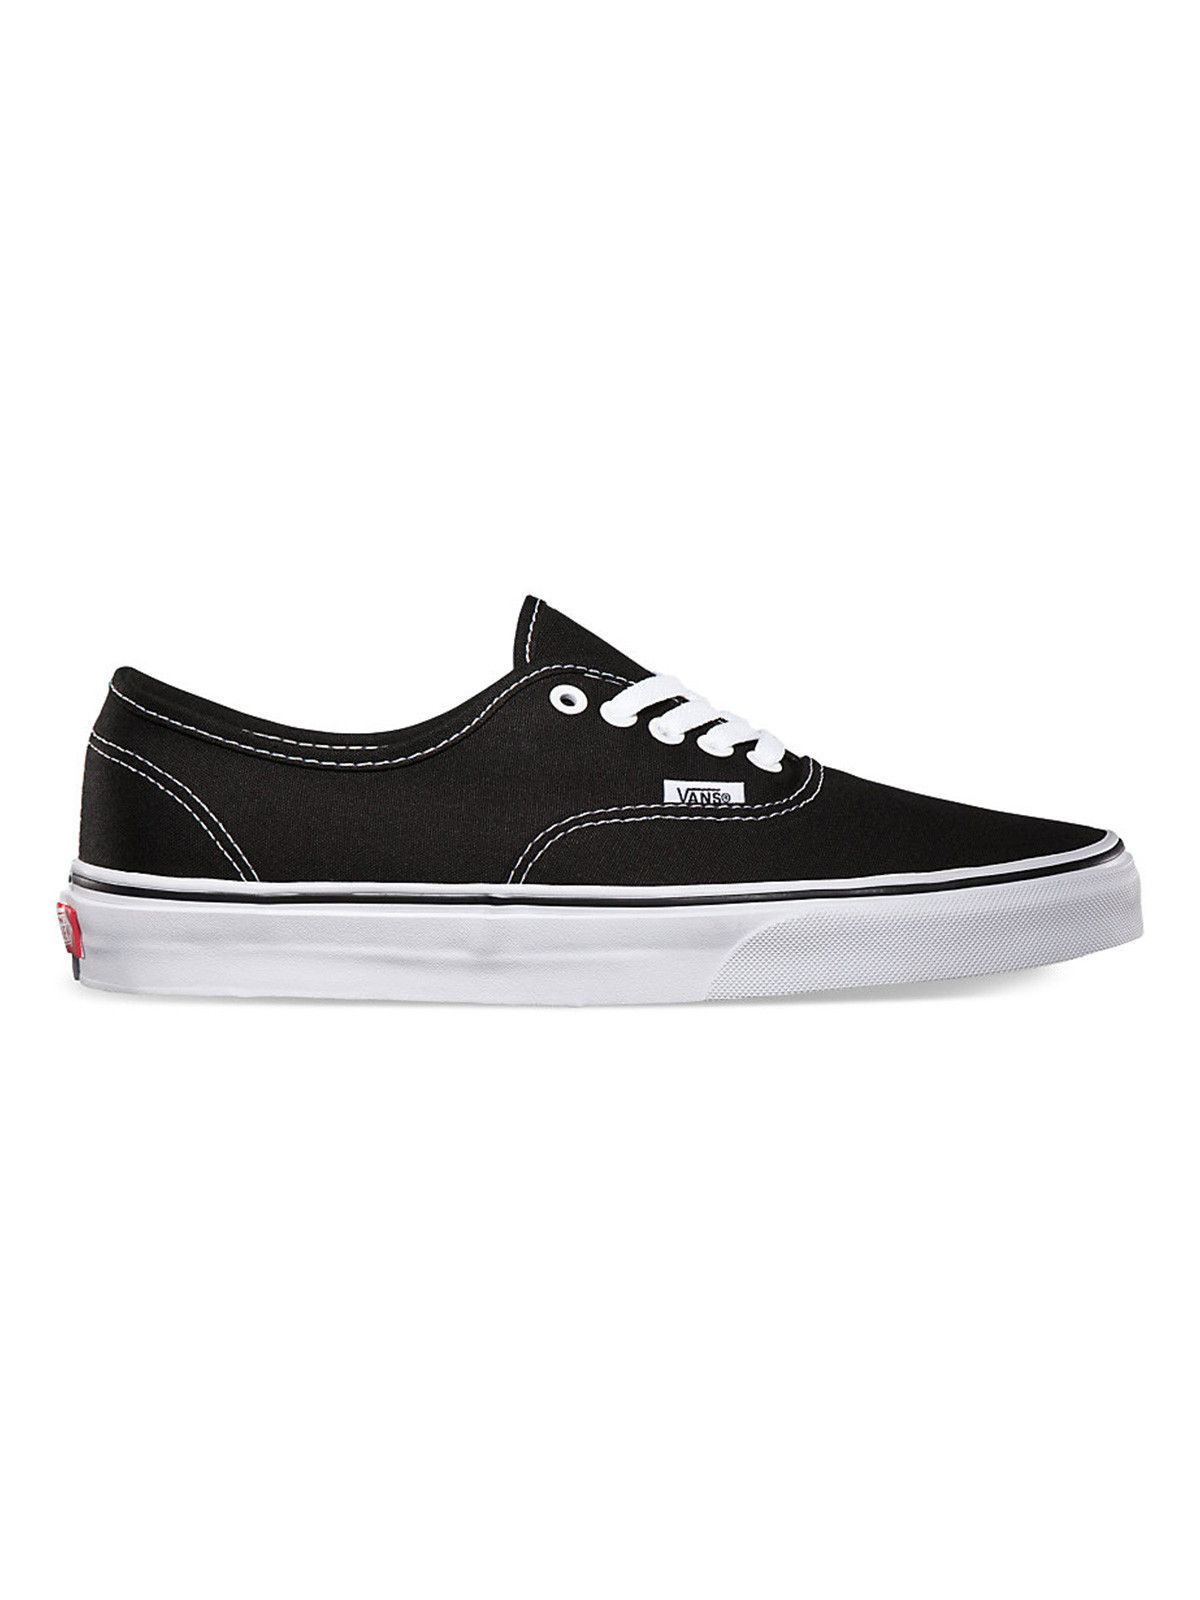 31e41493d6 Vans Authentic - Black